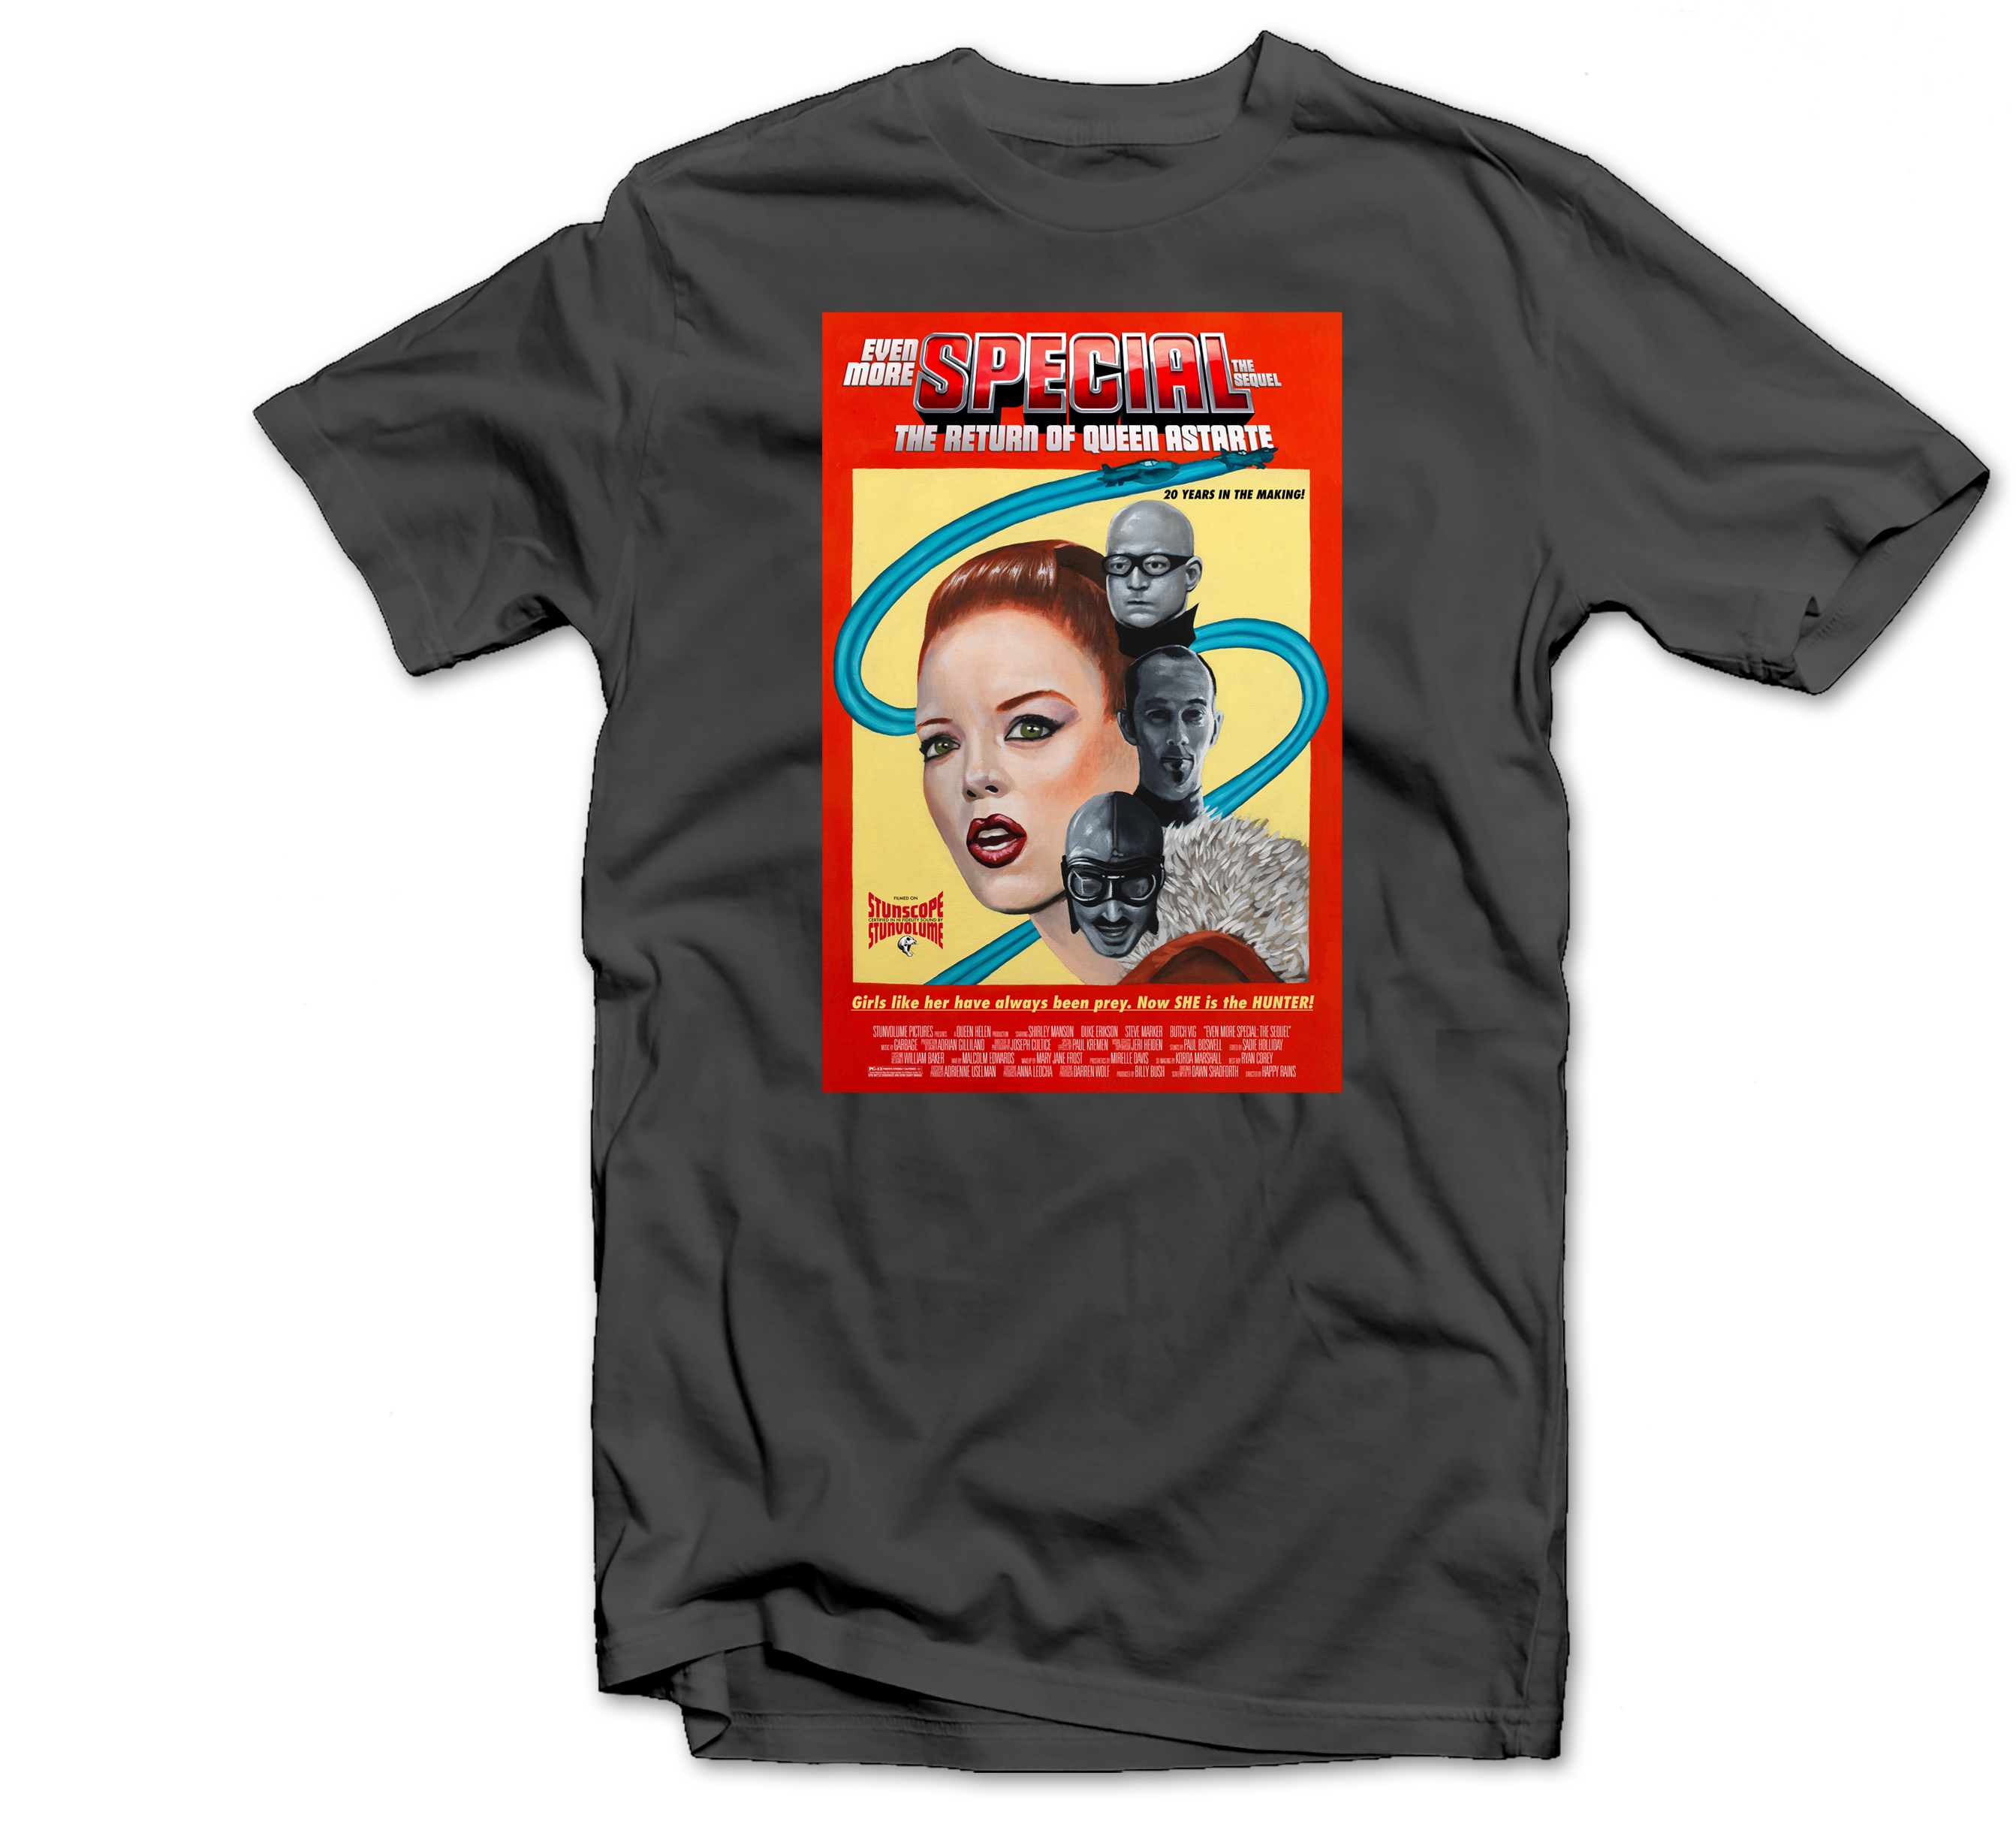 Special T-Shirt - Garbage